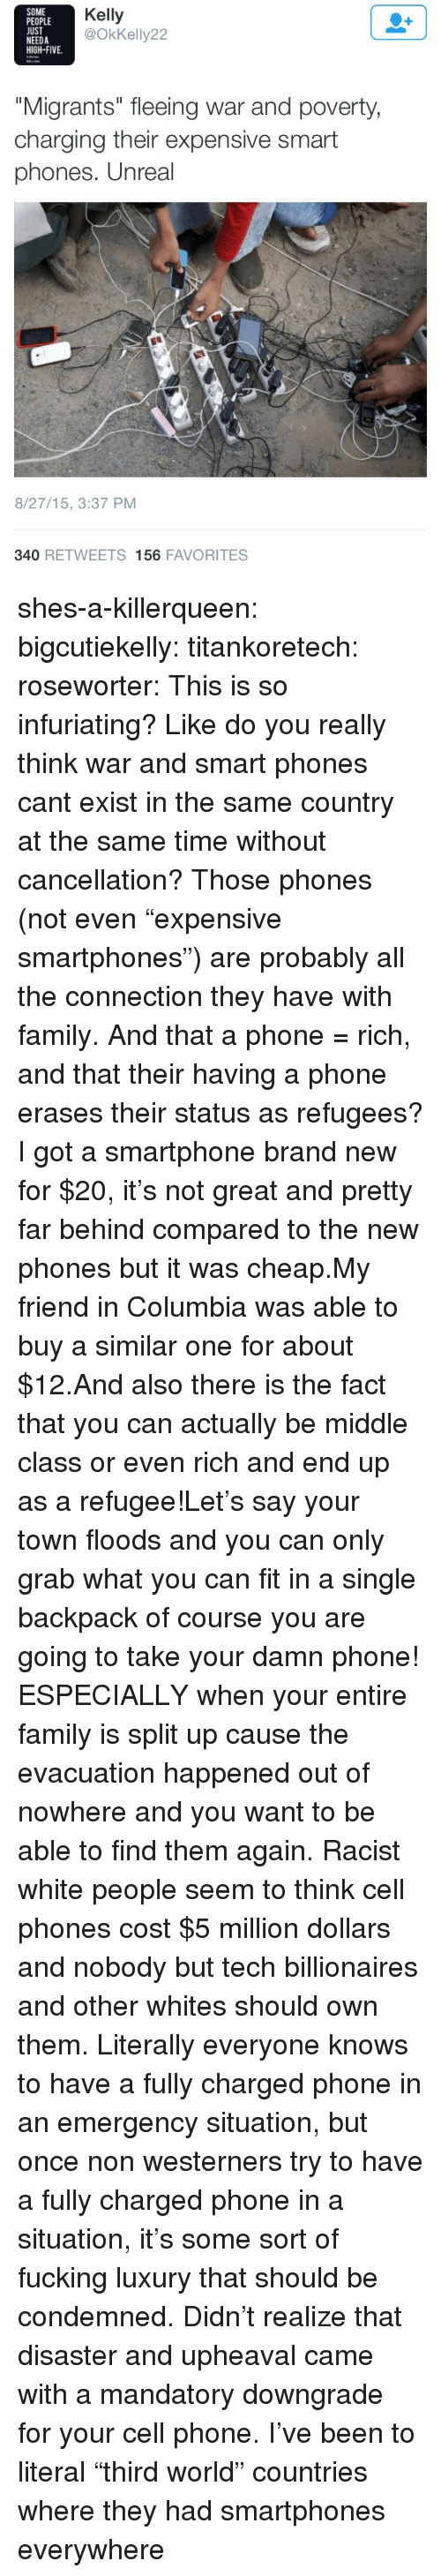 """Family, Fucking, and Phone: SOME  PEOPLE  UST  NEEDA  HIGH-FIVE.  Kelly  @OkKelly22  """"Migrants"""" fleeing war and poverty  charging their expensive smart  phones. Unreal  8/27/15, 3:37 PM  340 RETWEETS 156 FAVORITES shes-a-killerqueen: bigcutiekelly:  titankoretech:  roseworter:  This is so infuriating? Like do you really think war and smart phones cant exist in the same country at the same time without cancellation? Those phones (not even """"expensive smartphones"""") are probably all the connection they have with family. And that a phone = rich, and that their having a phone erases their status as refugees?  I got a smartphone brand new for $20, it's not great and pretty far behind compared to the new phones but it was cheap.My friend in Columbia was able to buy a similar one for about $12.And also there is the fact that you can actually be middle class or even rich and end up as a refugee!Let's say your town floods and you can only grab what you can fit in a single backpack of course you are going to take your damn phone! ESPECIALLY when your entire family is split up cause the evacuation happened out of nowhere and you want to be able to find them again.  Racist white people seem to think cell phones cost $5 million dollars and nobody but tech billionaires and other whites should own them.   Literally everyone knows to have a fully charged phone in an emergency situation, but once non westerners try to have a fully charged phone in a situation, it's some sort of fucking luxury that should be condemned. Didn't realize that disaster and upheaval came with a mandatory downgrade for your cell phone.   I've been to literal """"third world"""" countries where they had smartphones everywhere"""